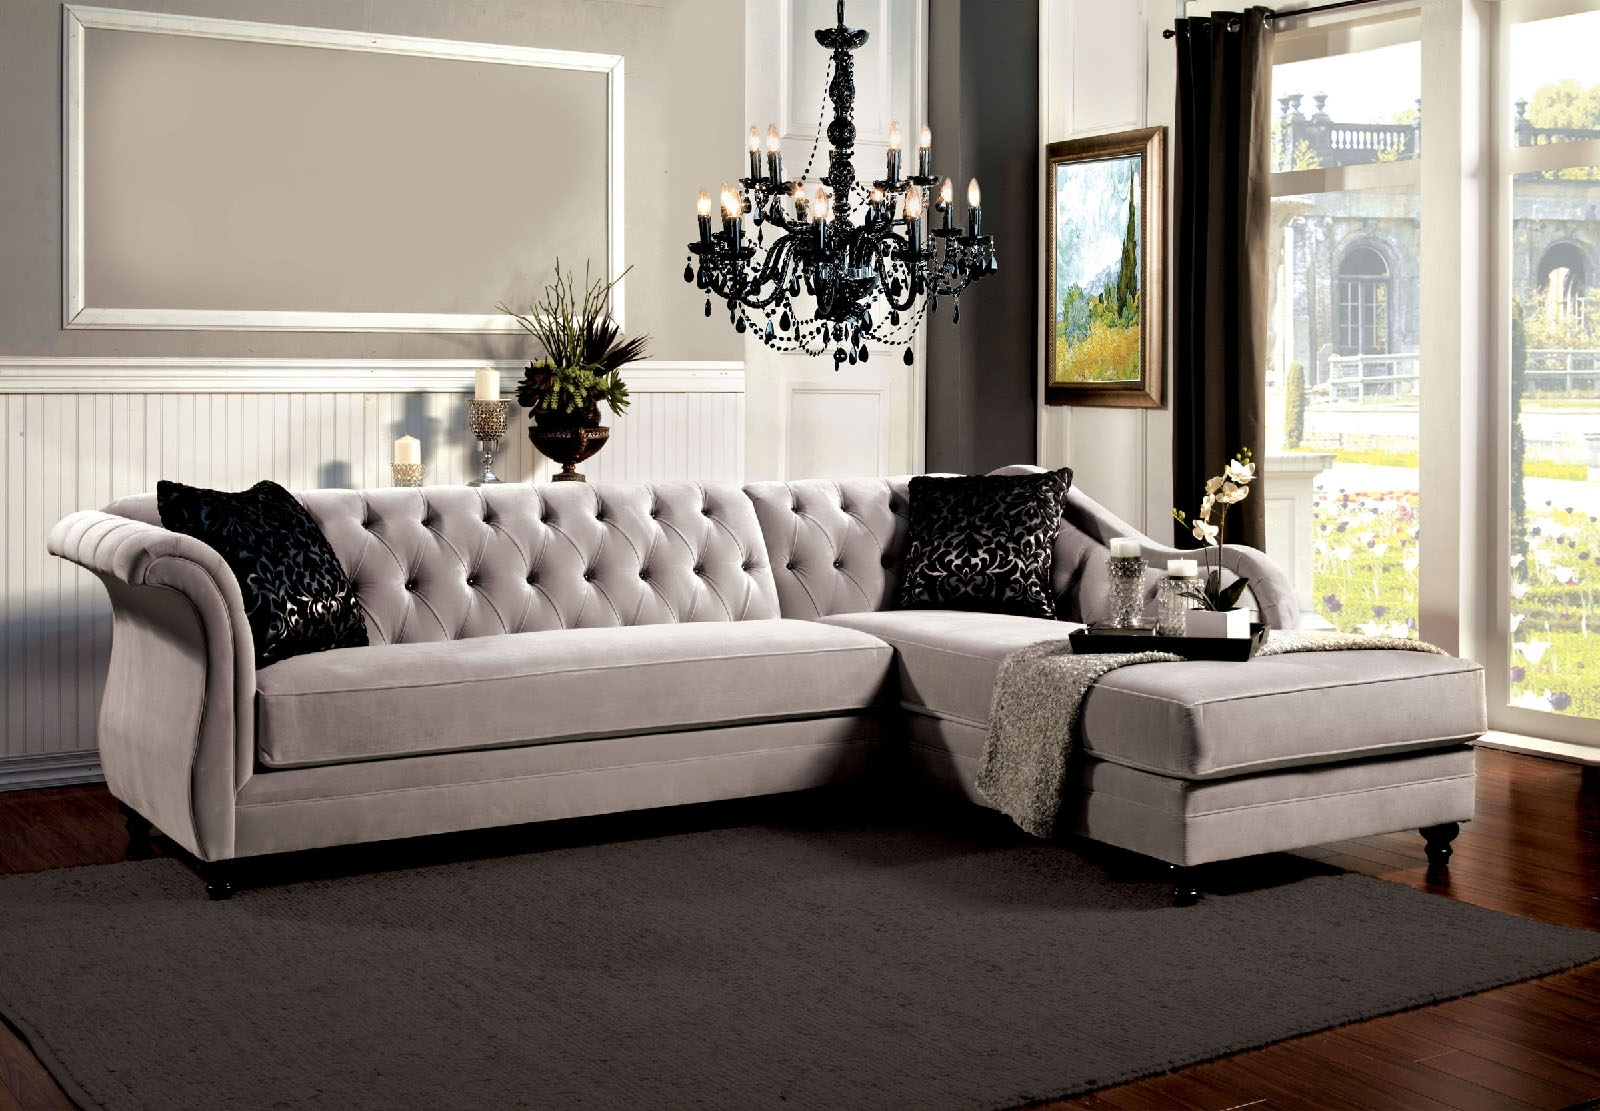 Grey Vintage Tufted Sectional Sofa Intended For Tufted Sectional Sofas (View 3 of 10)